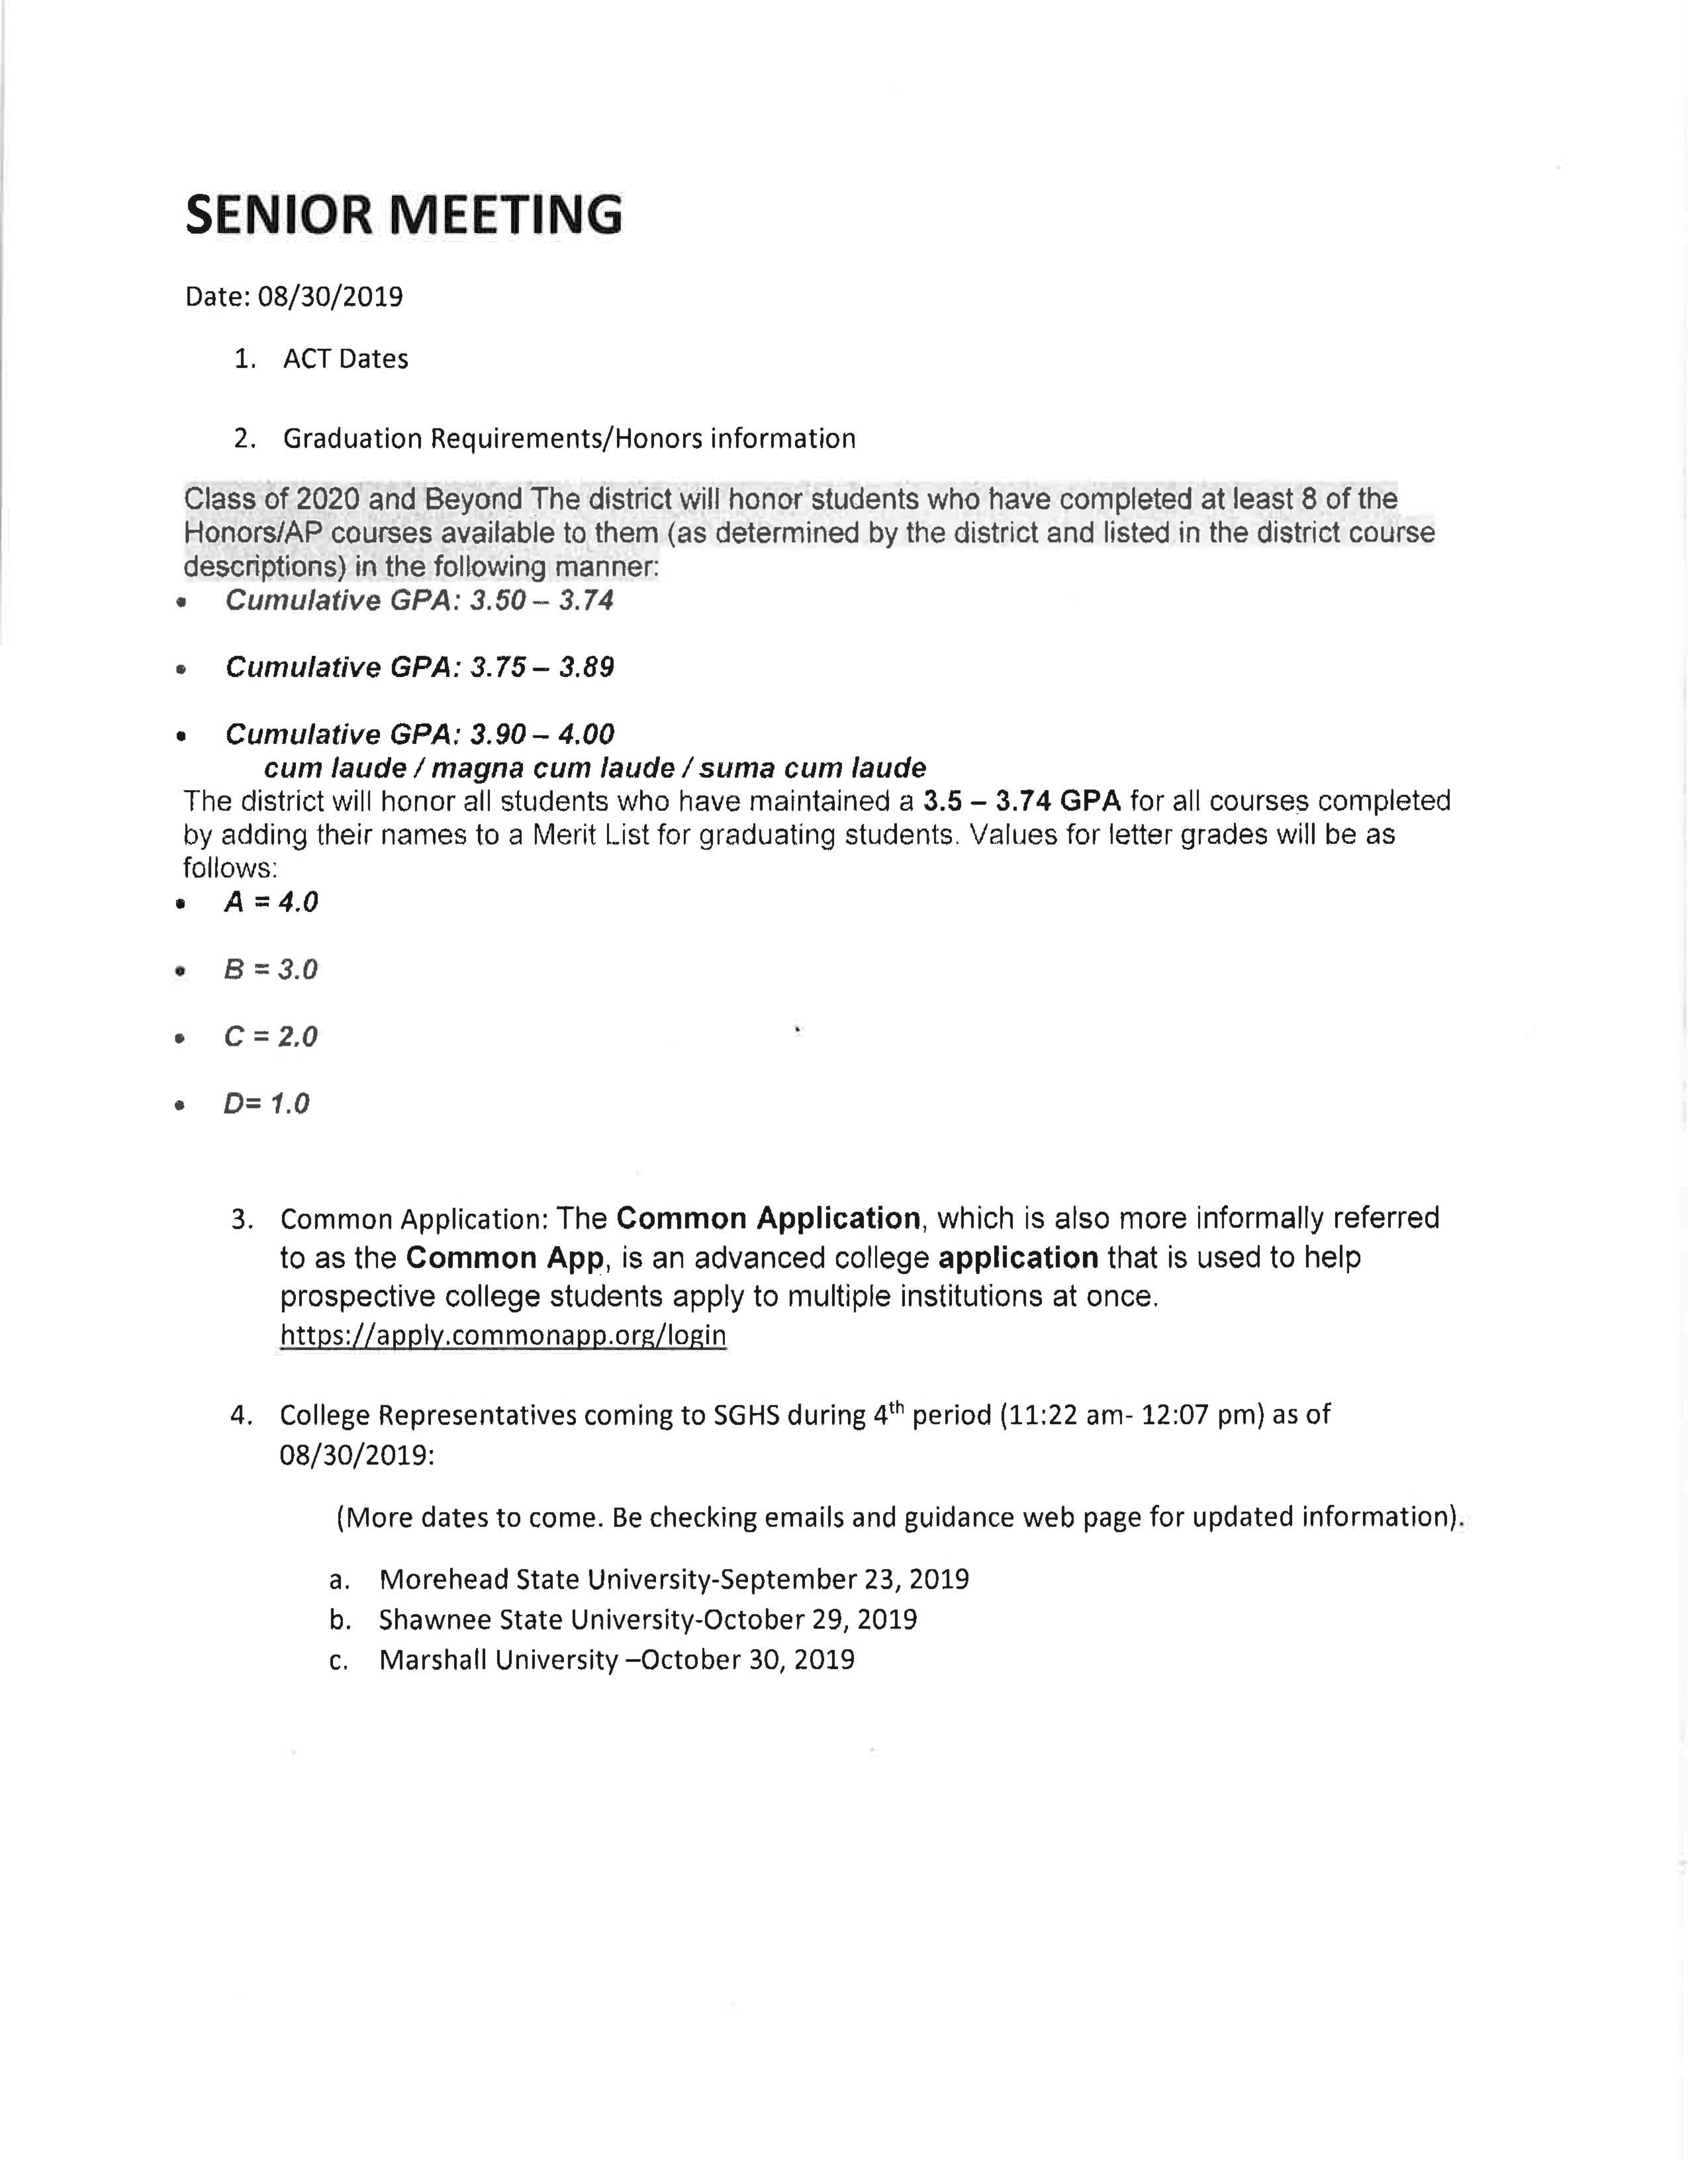 Senior Meeting Notes page 1